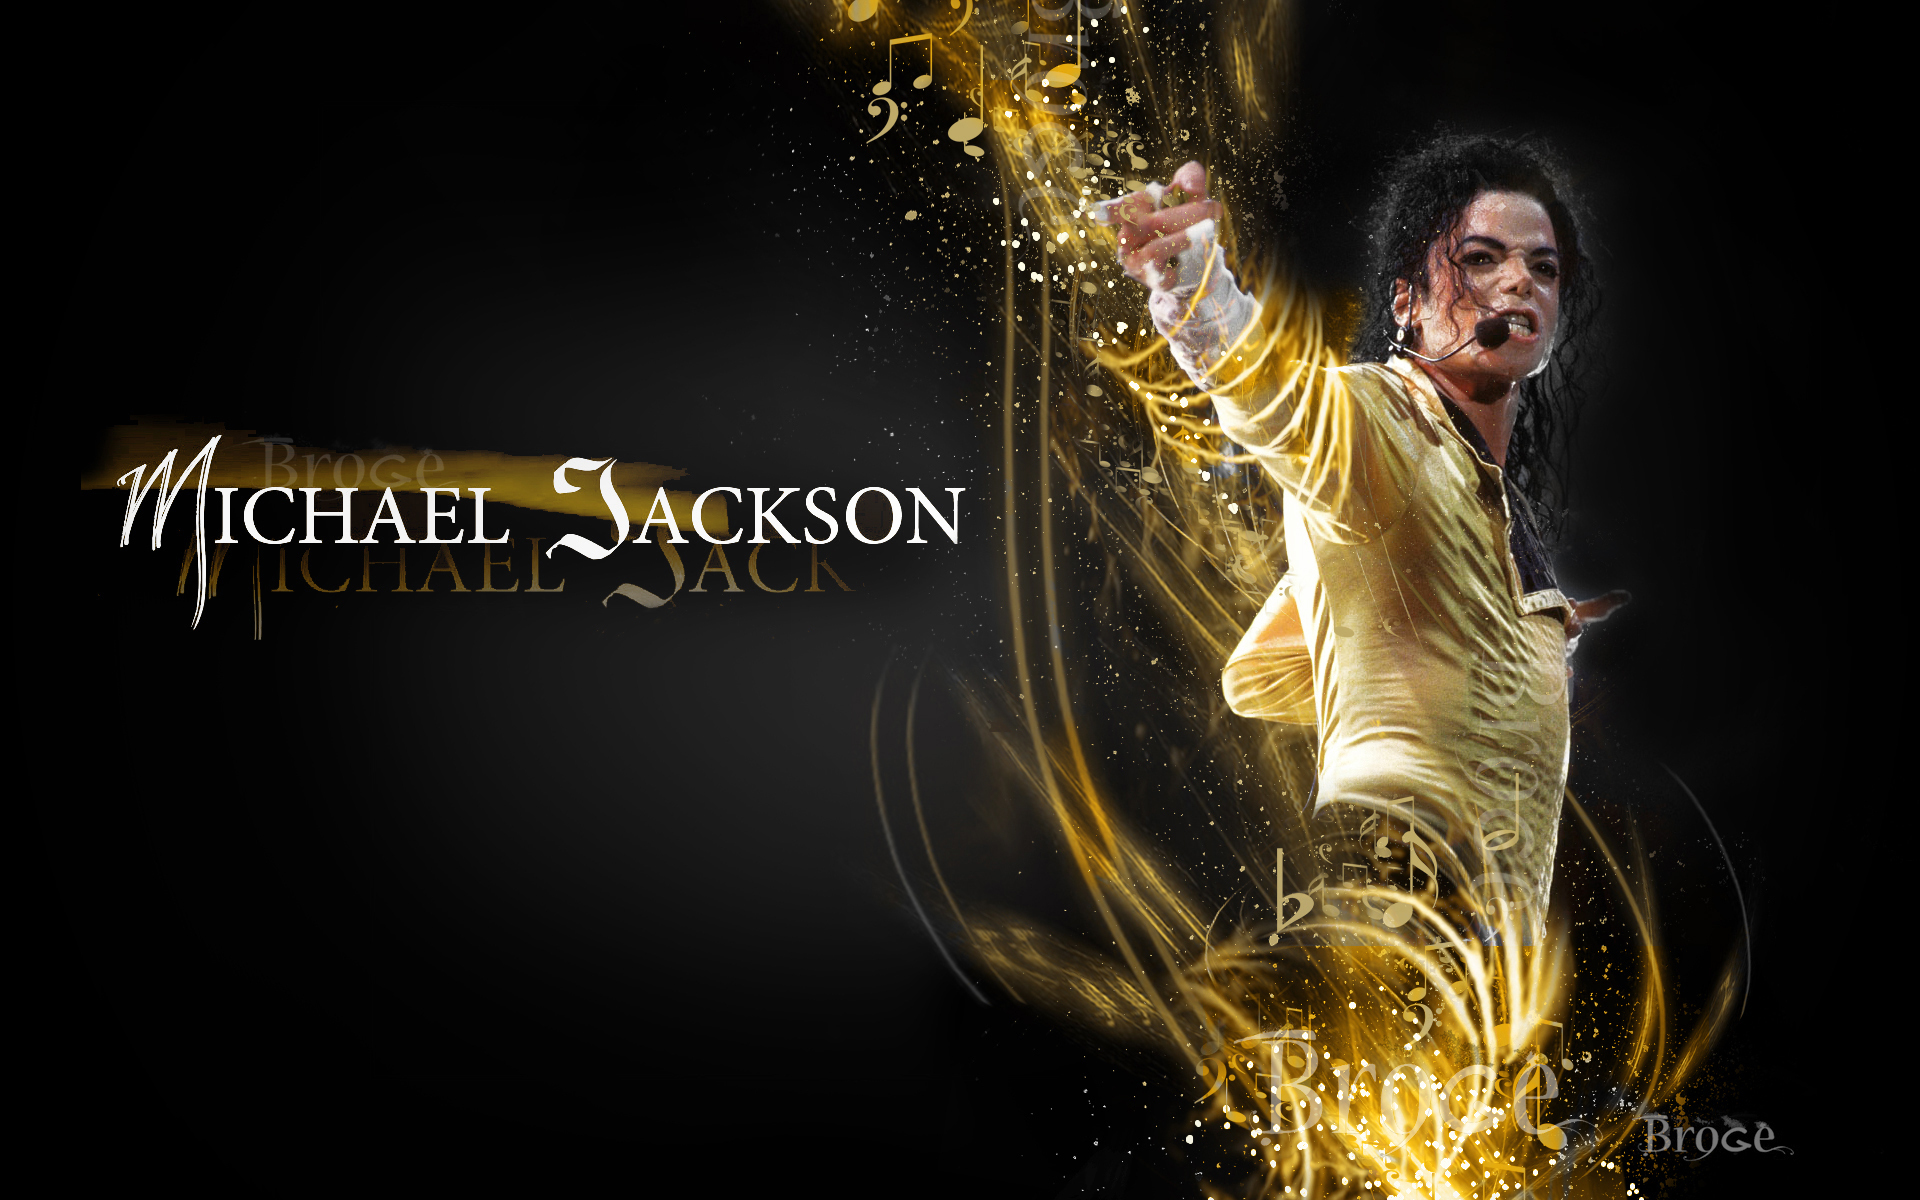 michael jackson images wallpapers - photo #28